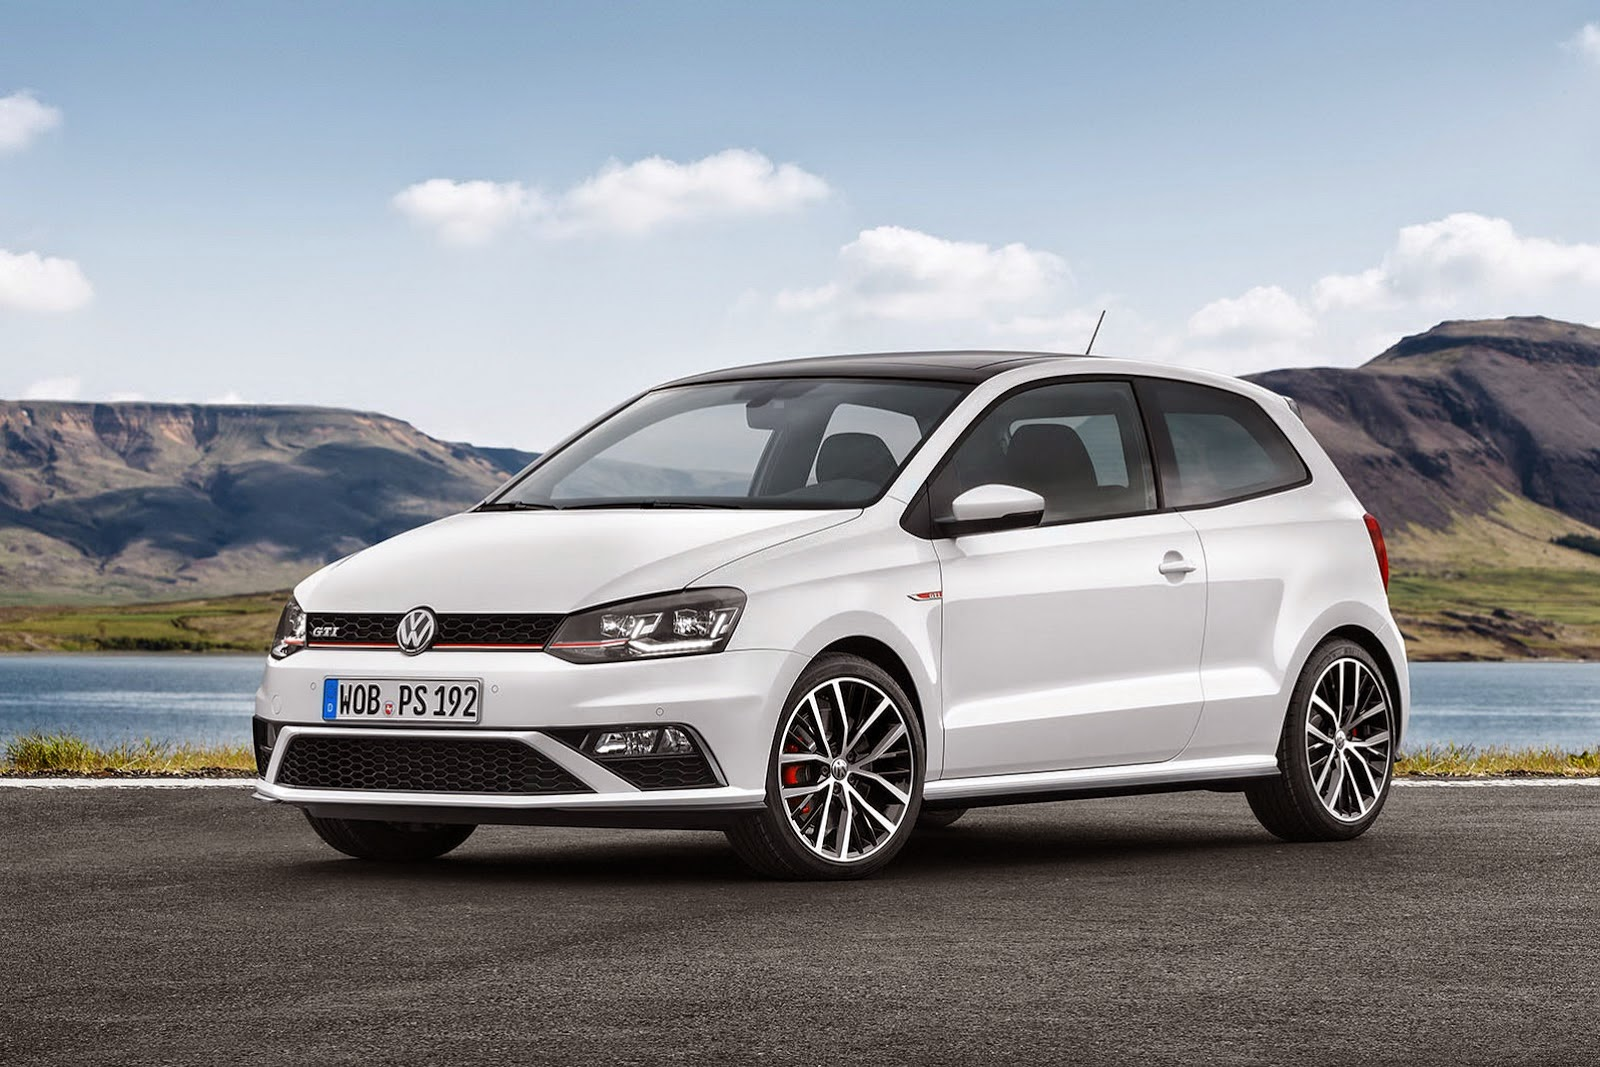 The New Polo Gti Gets A Facelift And 1 8 Litre Turbo